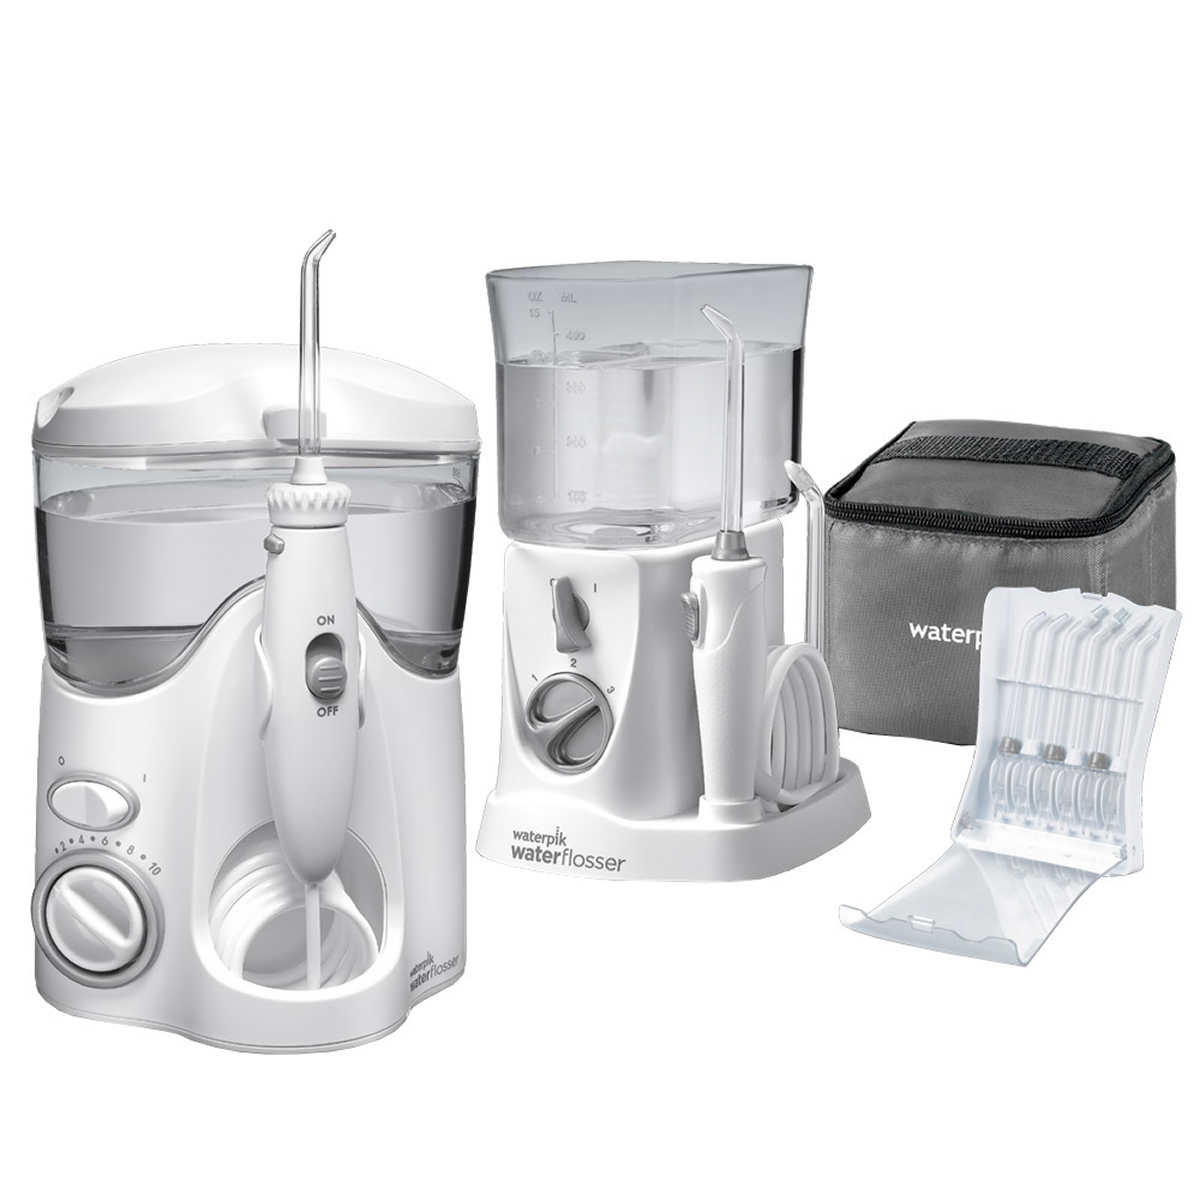 Waterpik Water Flosser Kit